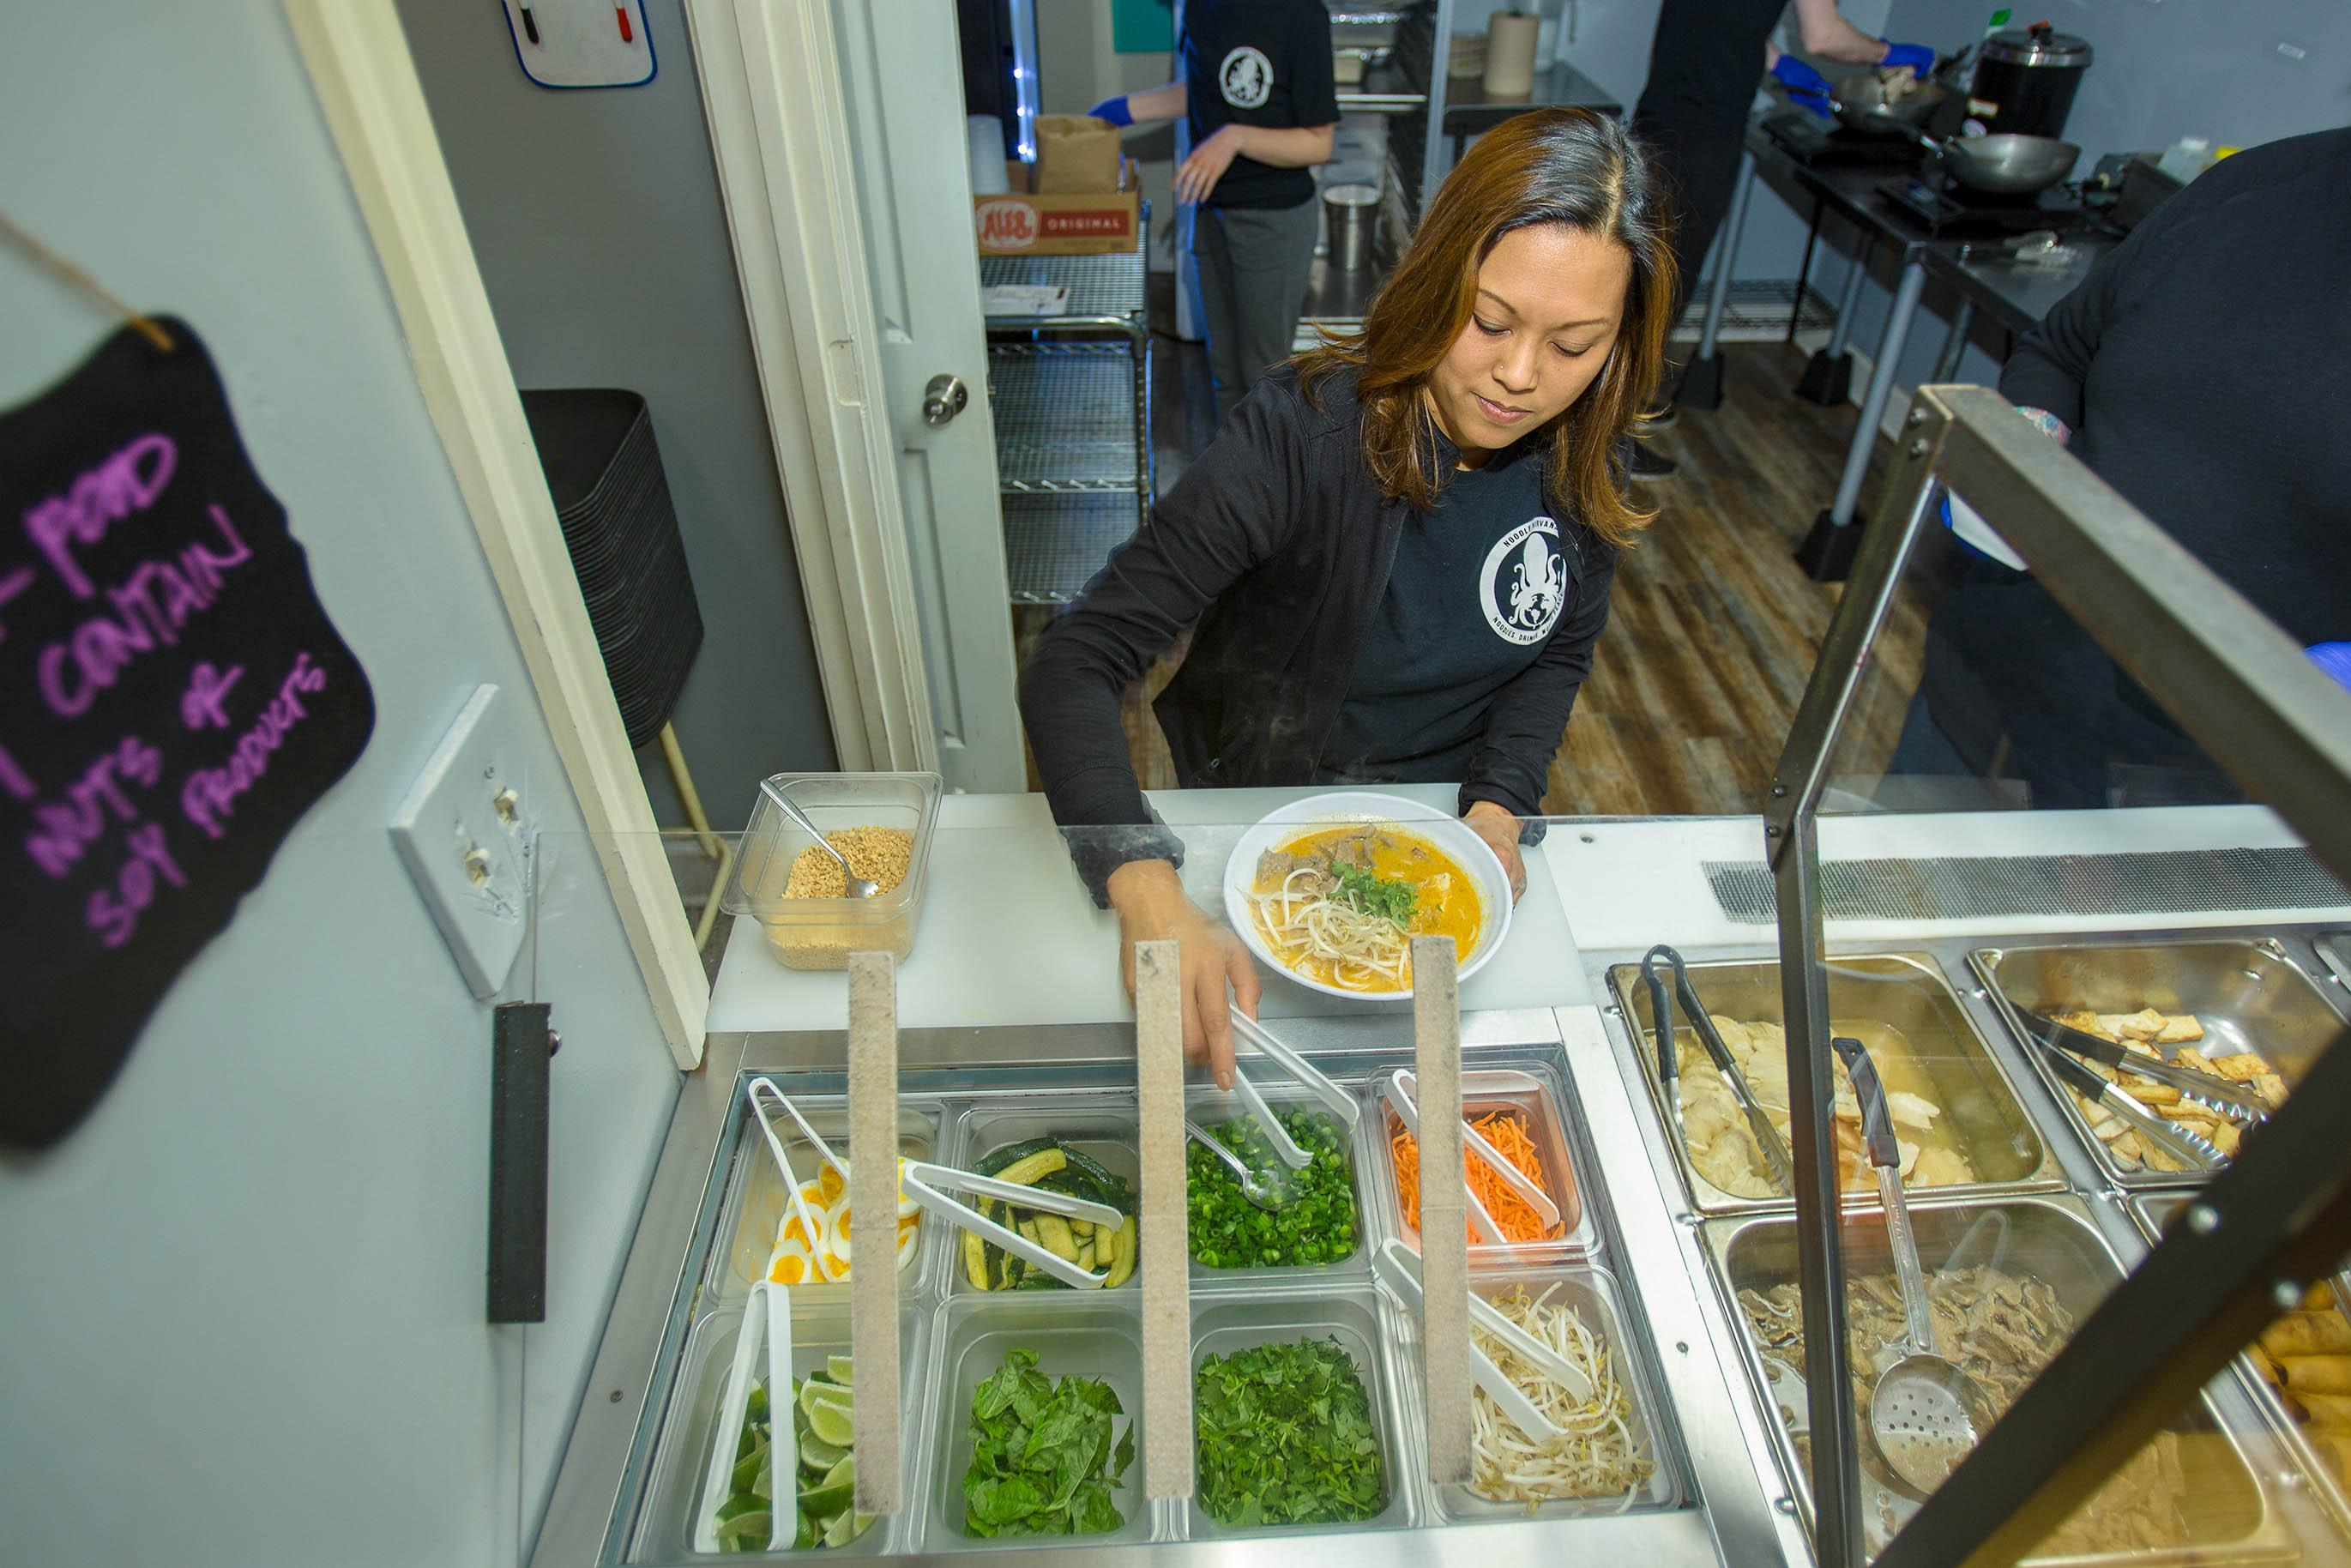 Mae Suramek dishes out noodles in her Berea restaurant, Noodle Nirvana.